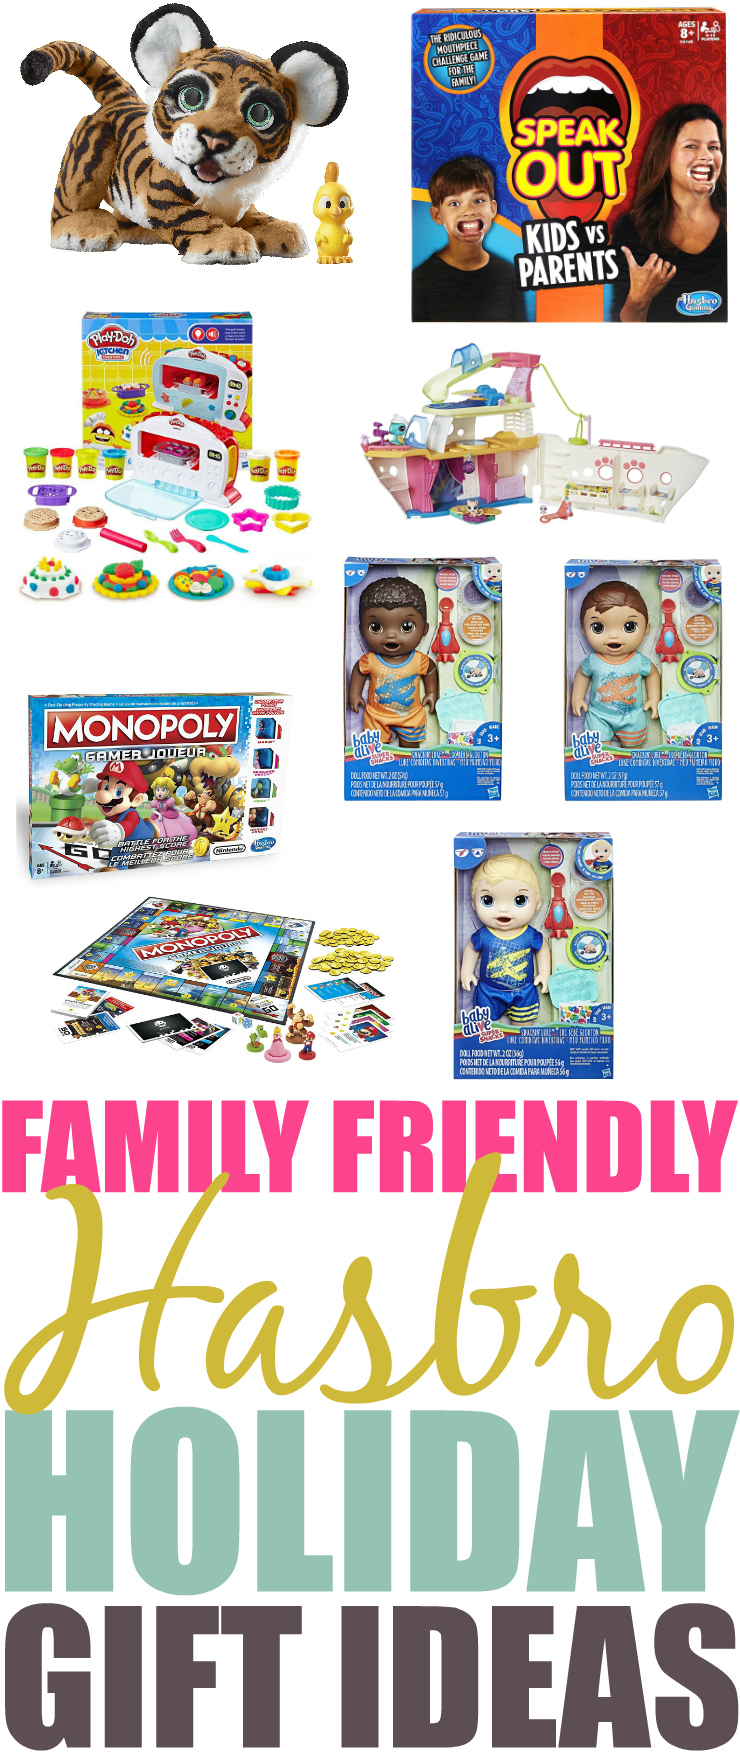 Hasbro Holiday Gifts For The Whole Family